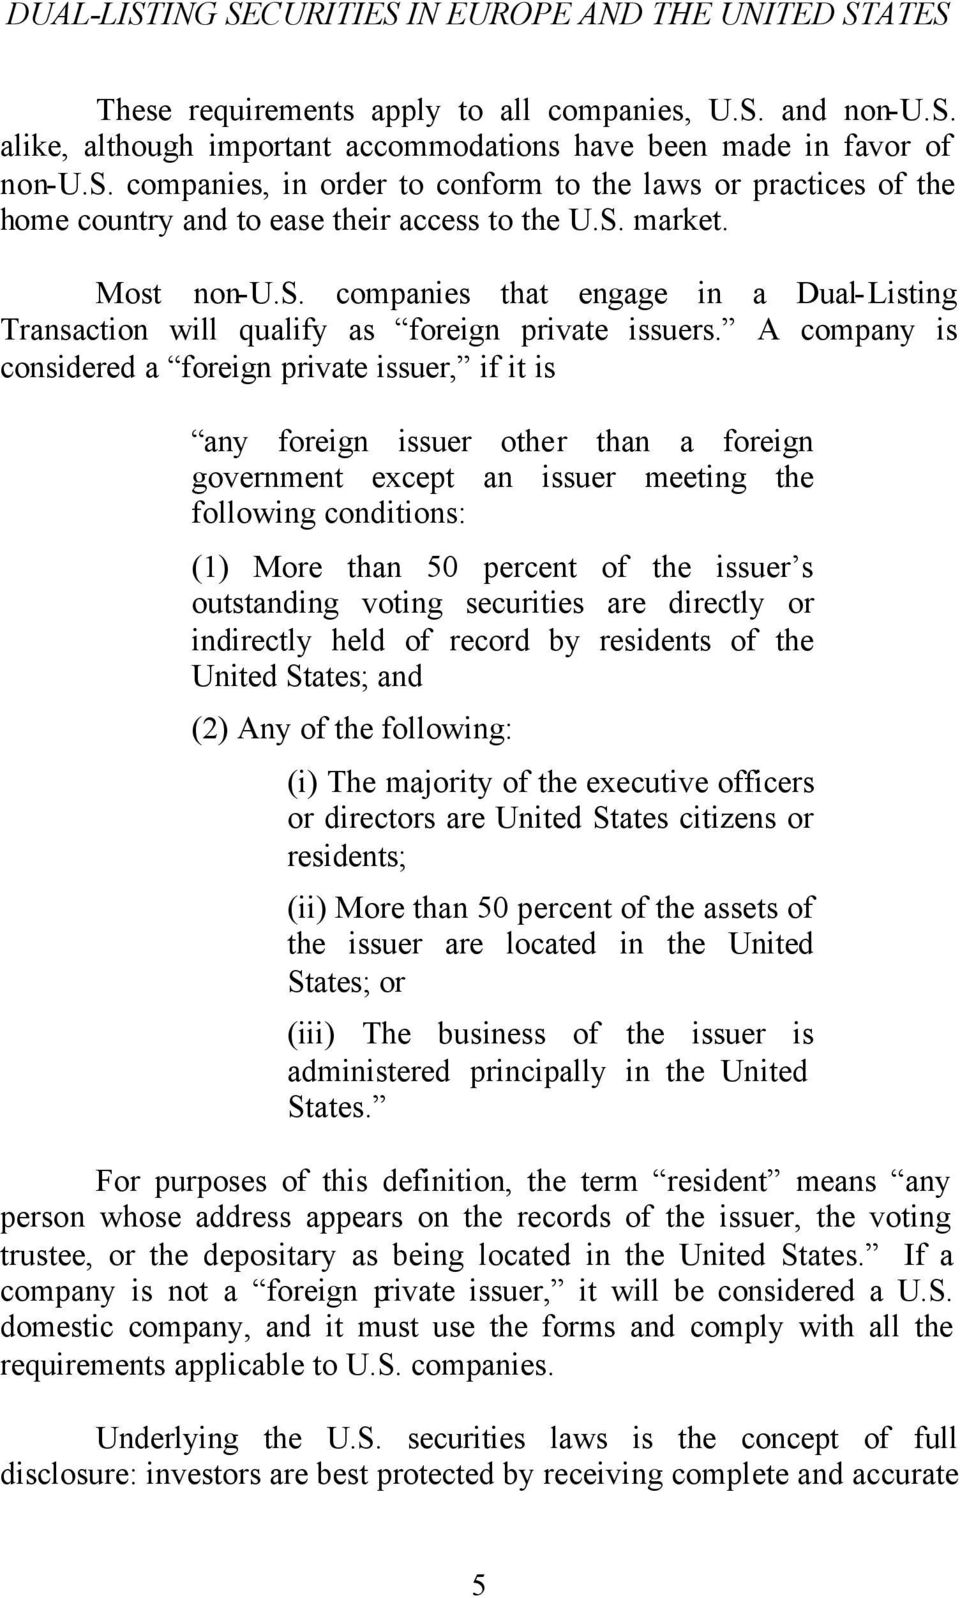 A company is considered a foreign private issuer, if it is any foreign issuer other than a foreign government except an issuer meeting the following conditions: (1) More than 50 percent of the issuer